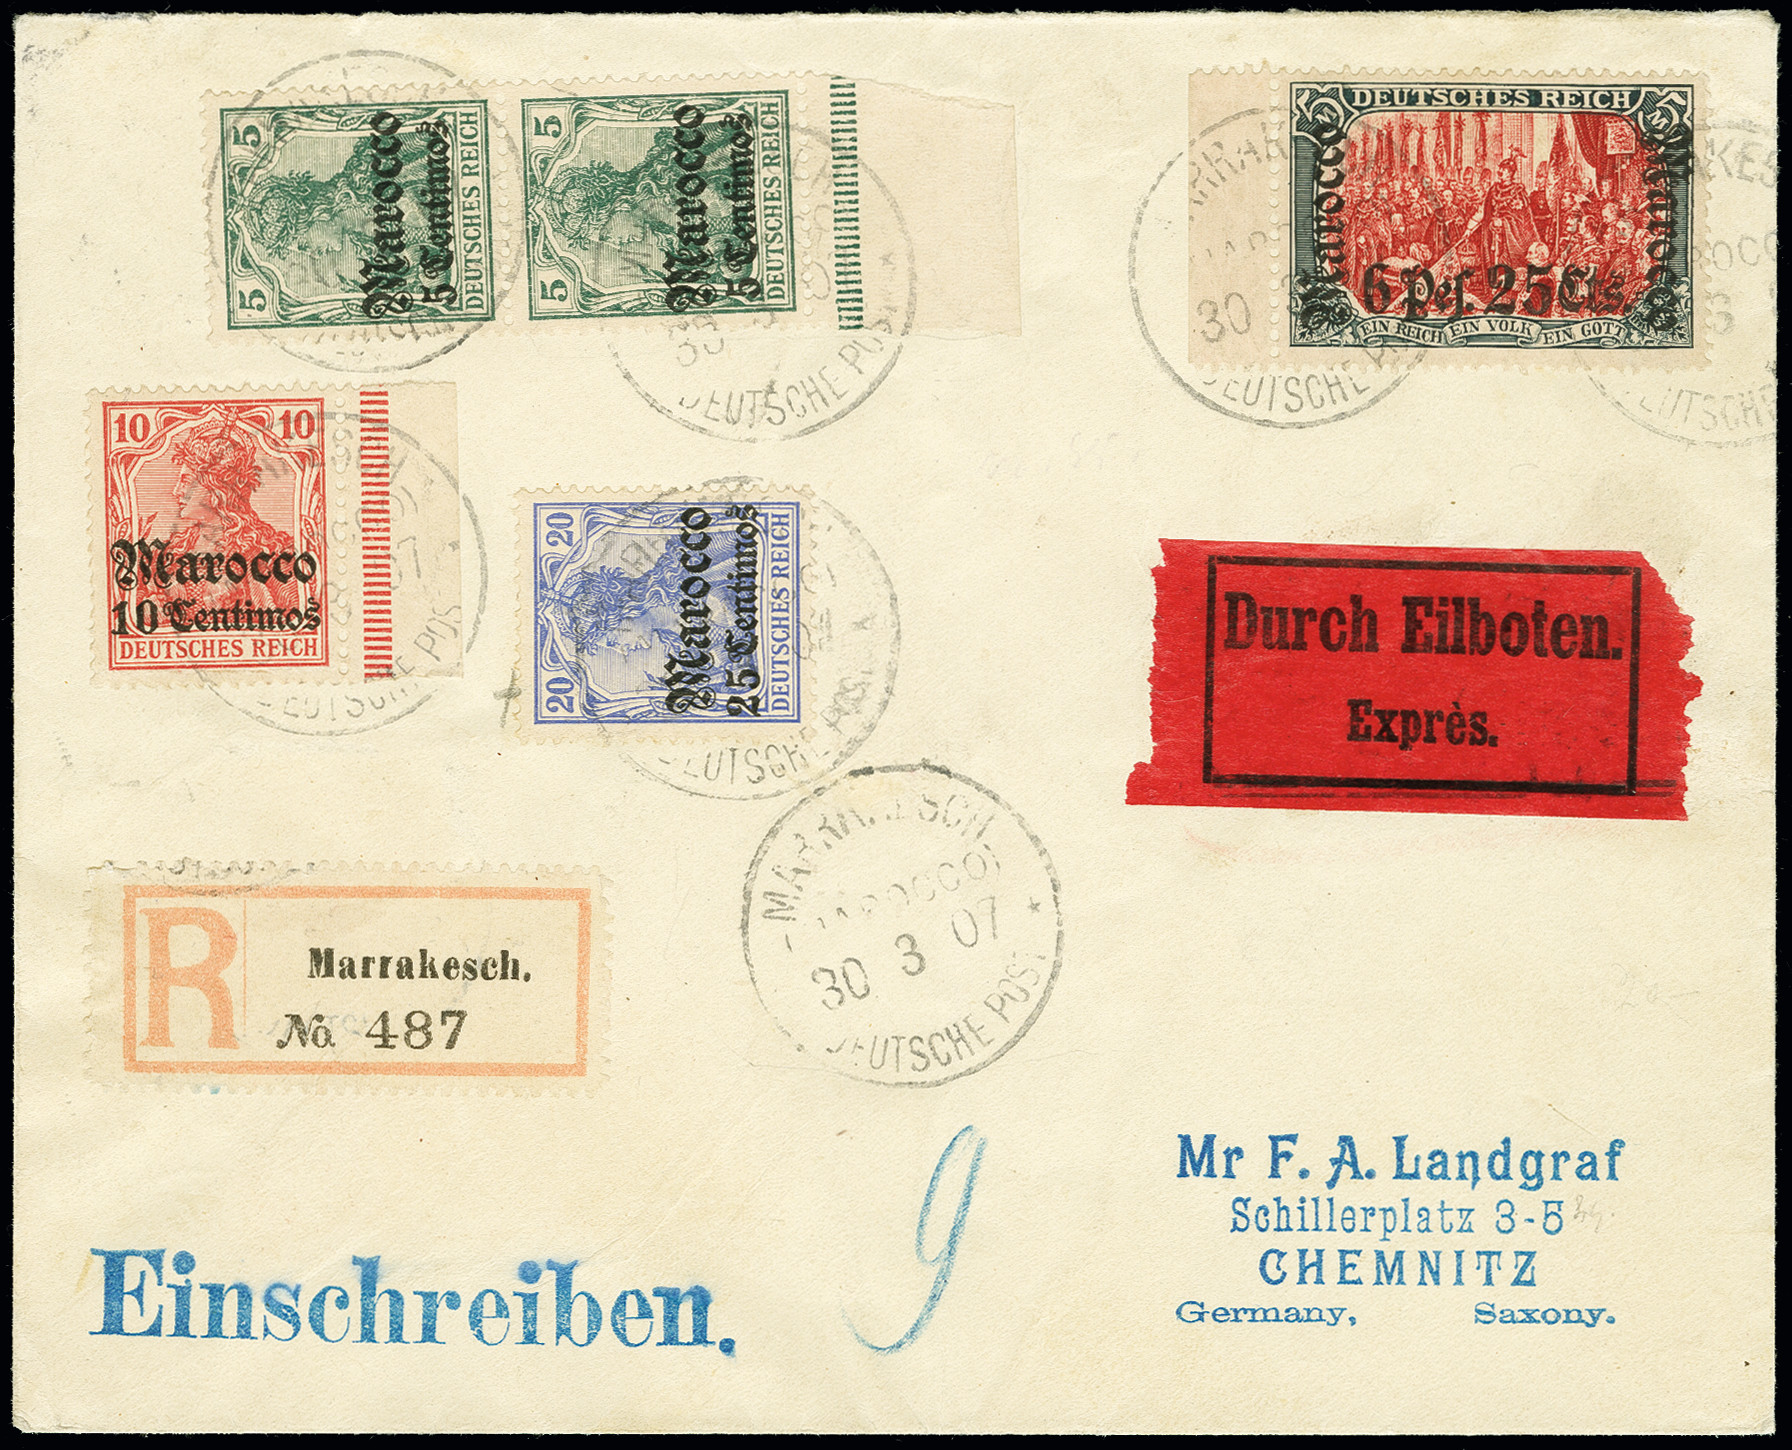 Lot 1551 - german colonies and offices abroad german post in marocco -  Heinrich Koehler Auktionen Auction #368- Day 4